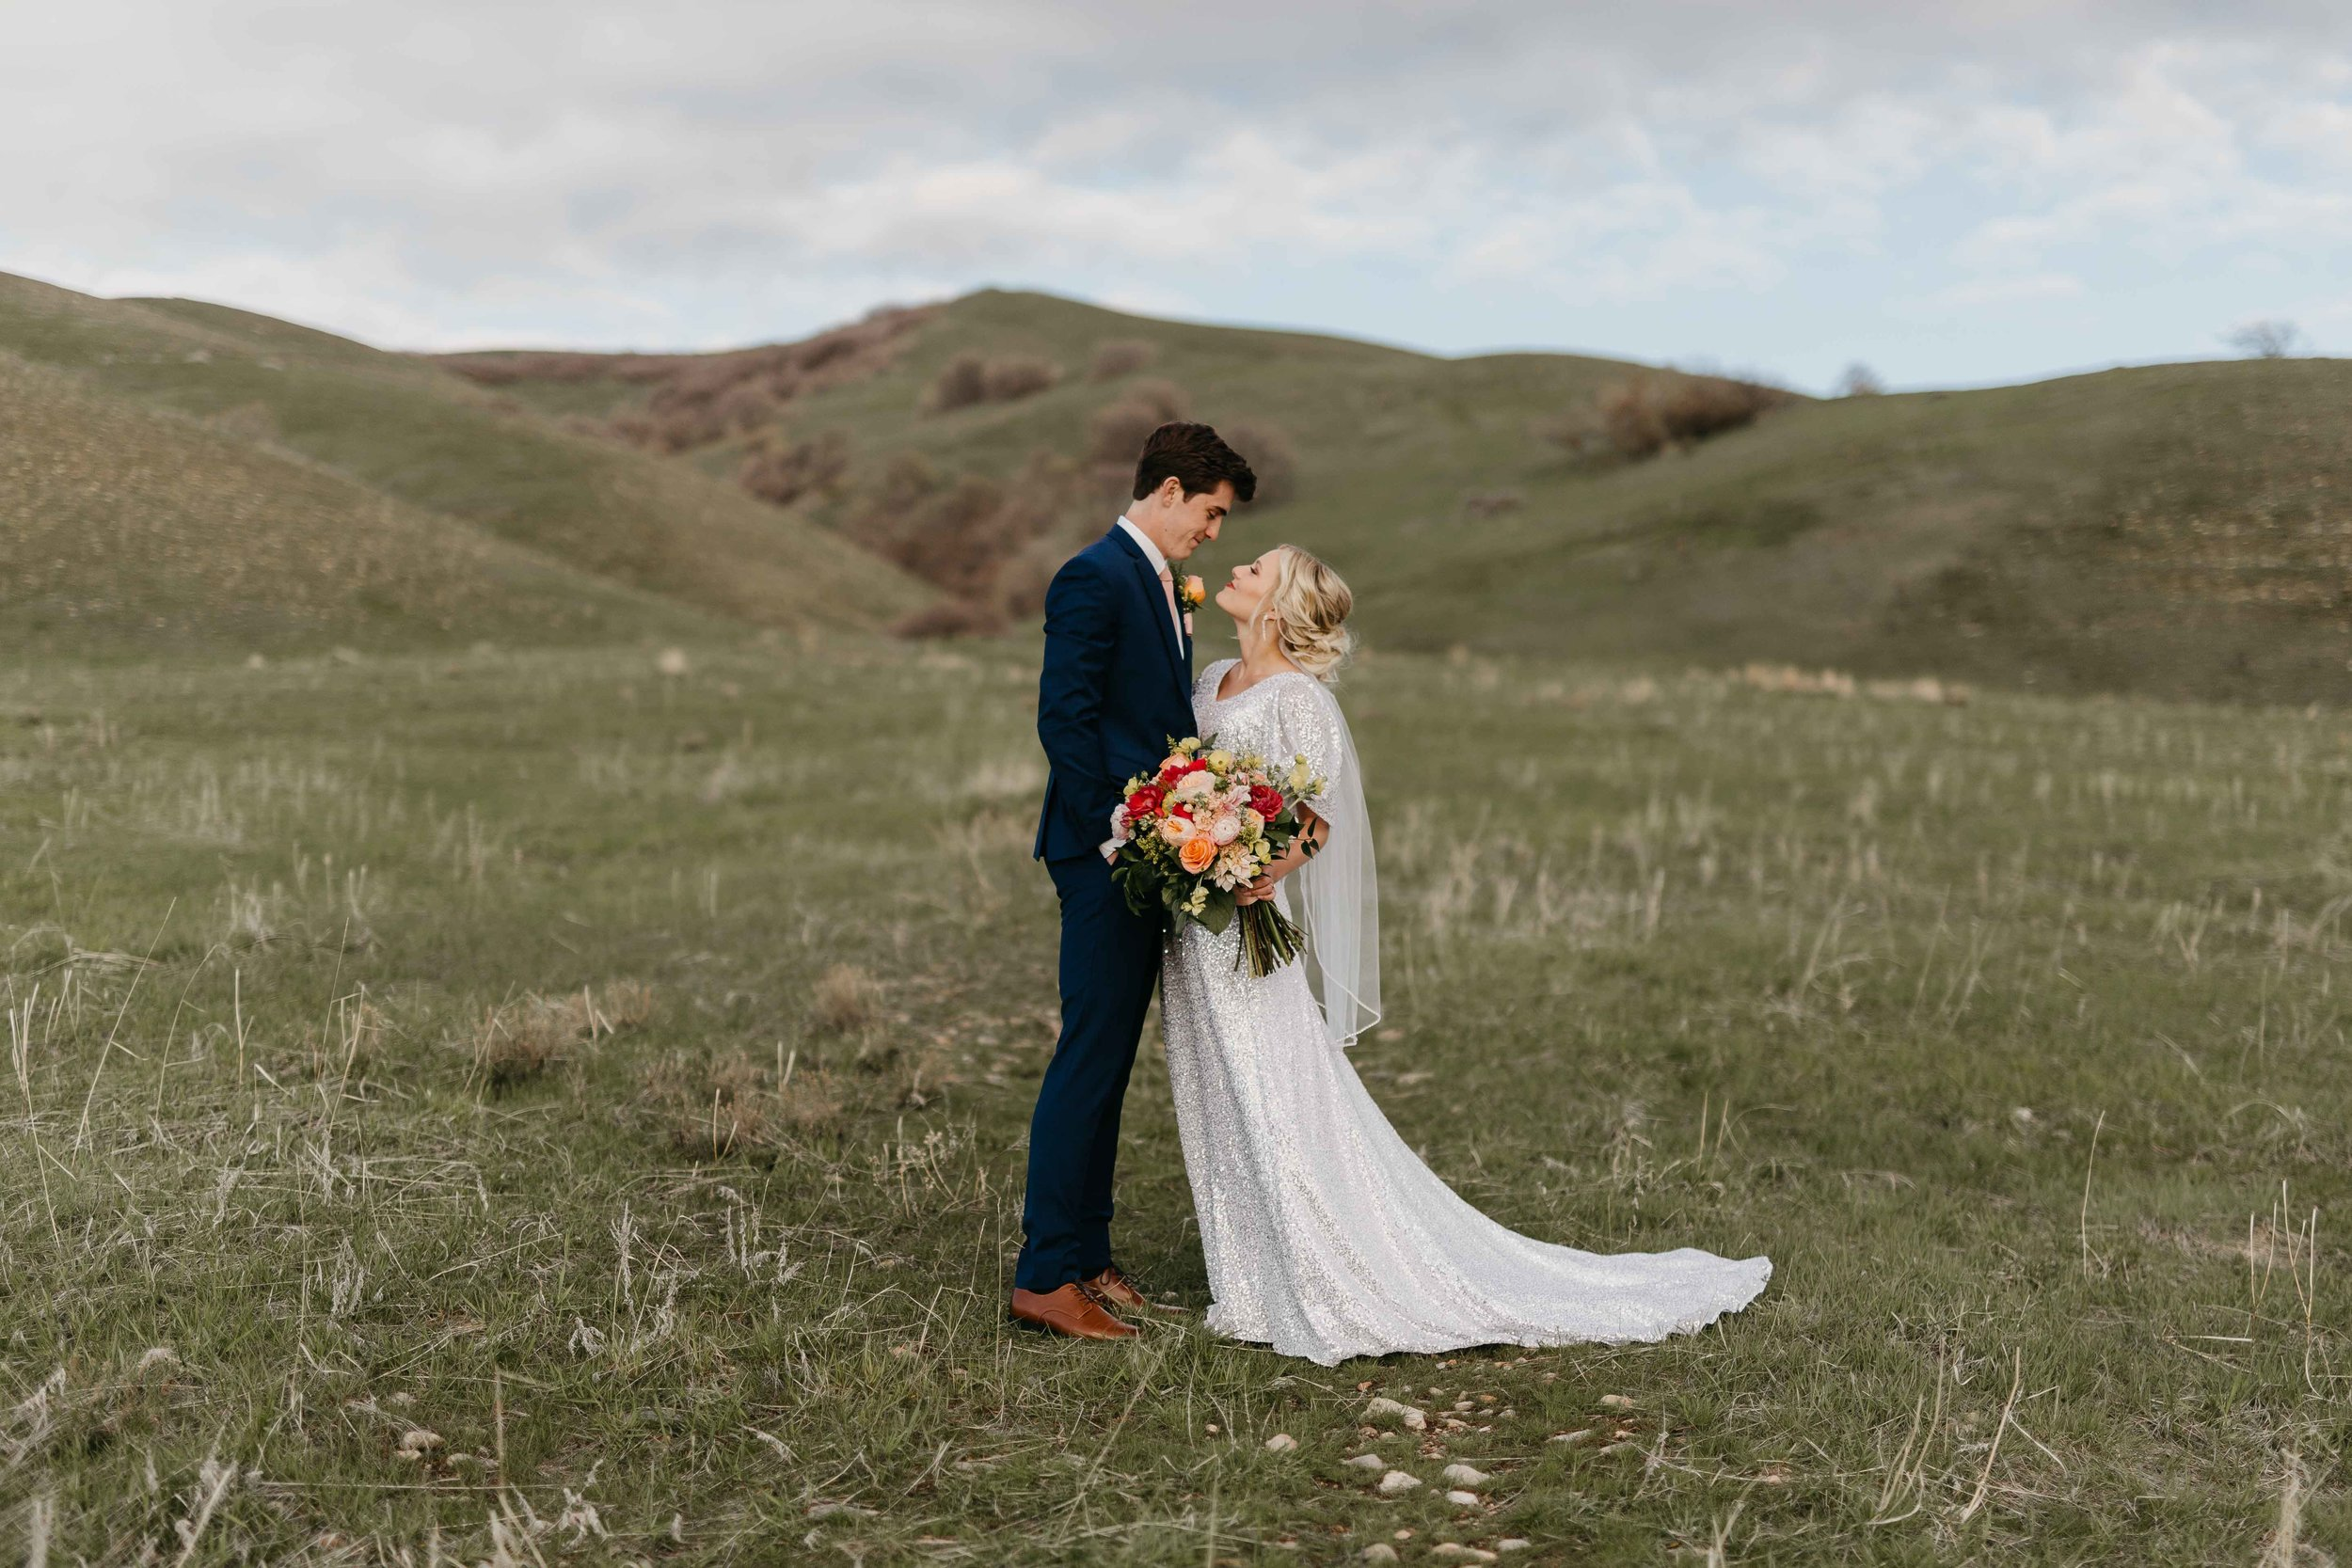 Utah-Wedding-Photographer-13.jpg